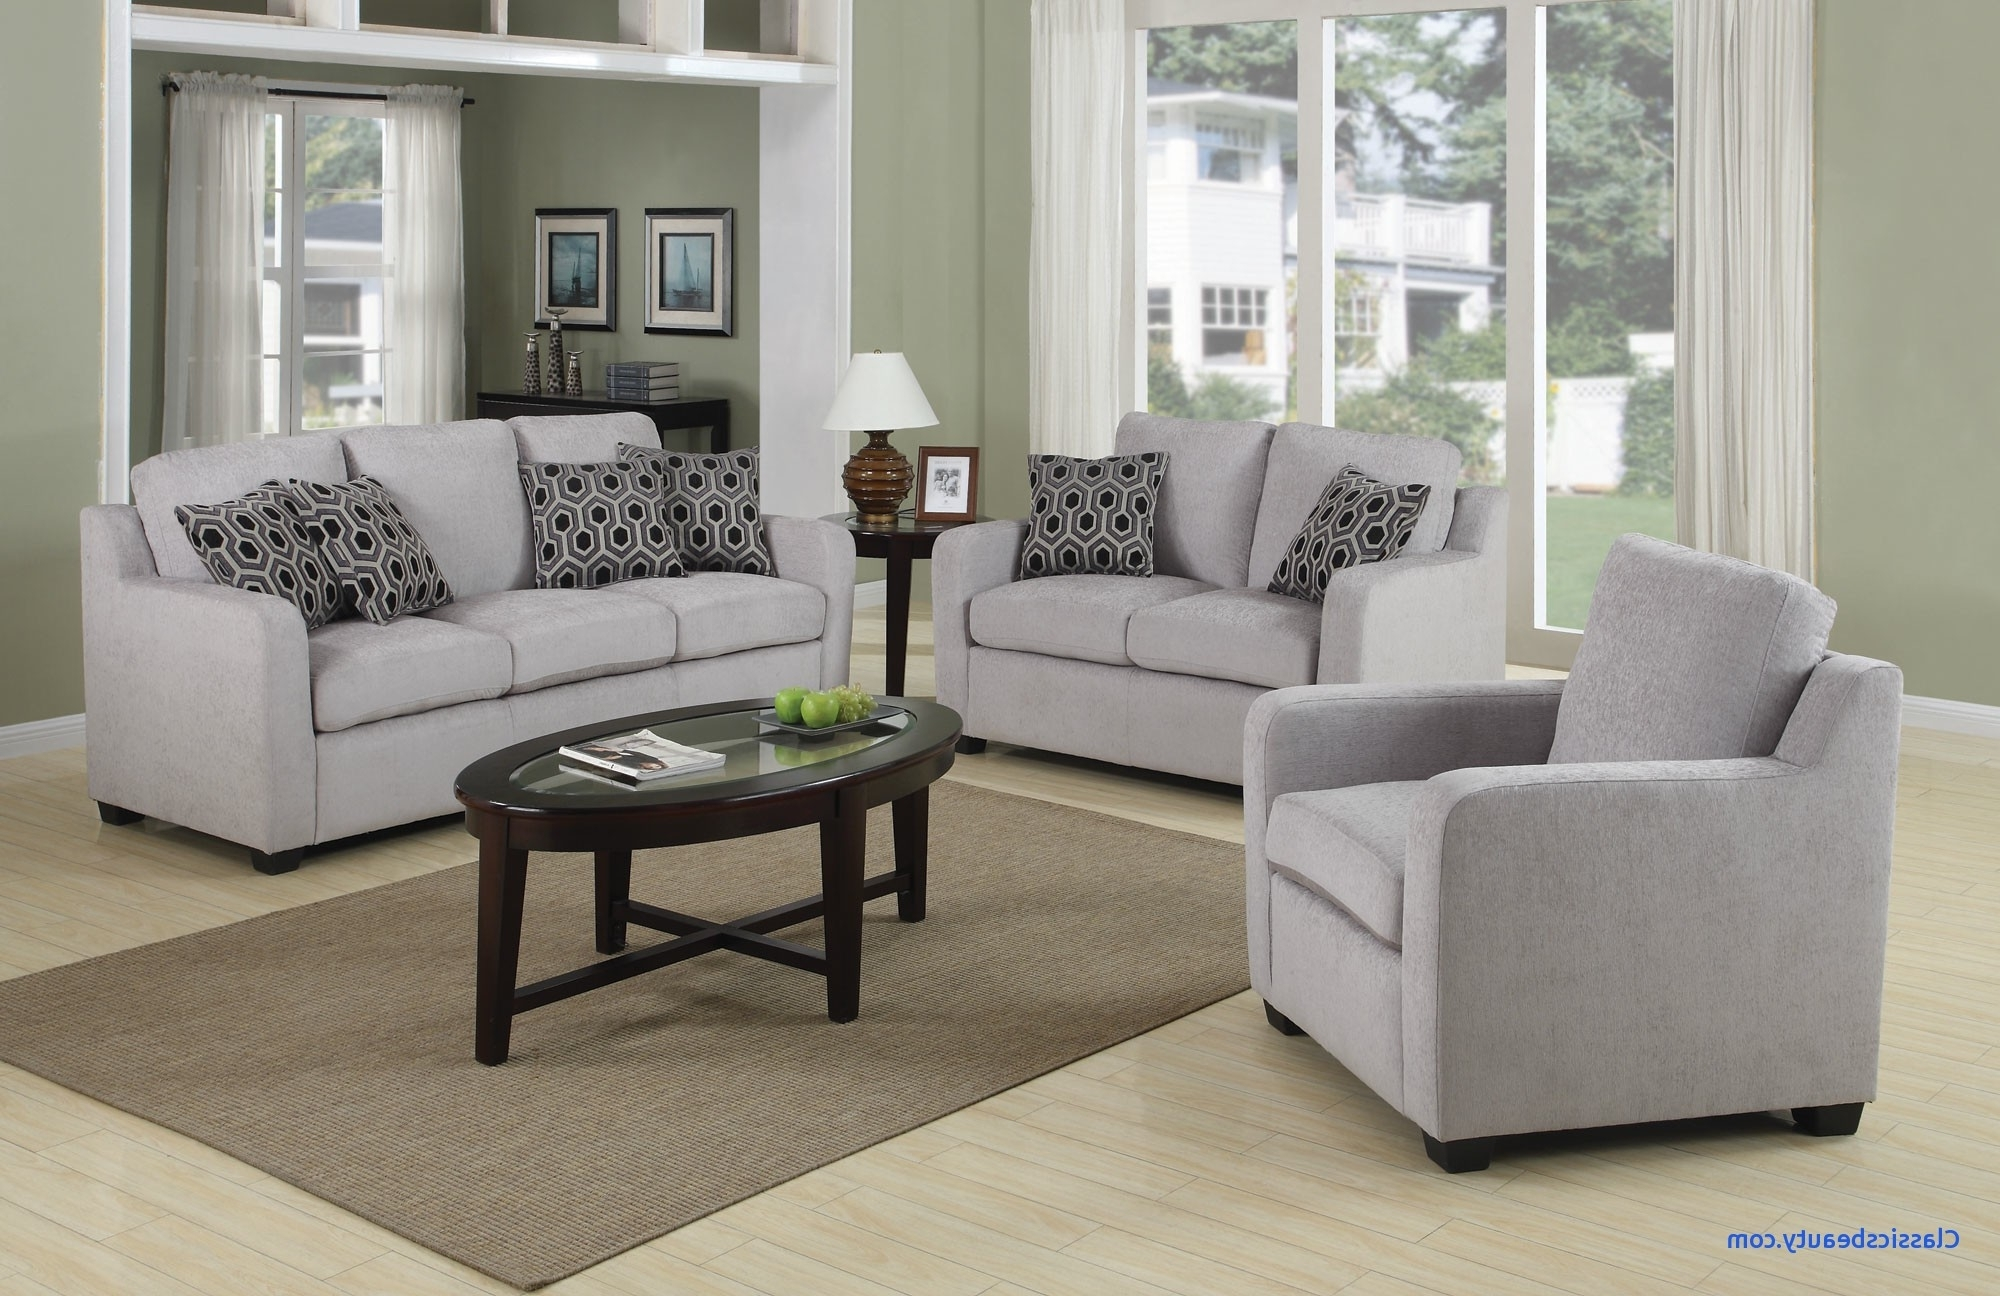 Sofas : U Shaped Sofa Velvet Sectional Couch Navy Blue Leather For Preferred Blue U Shaped Sectionals (View 11 of 20)